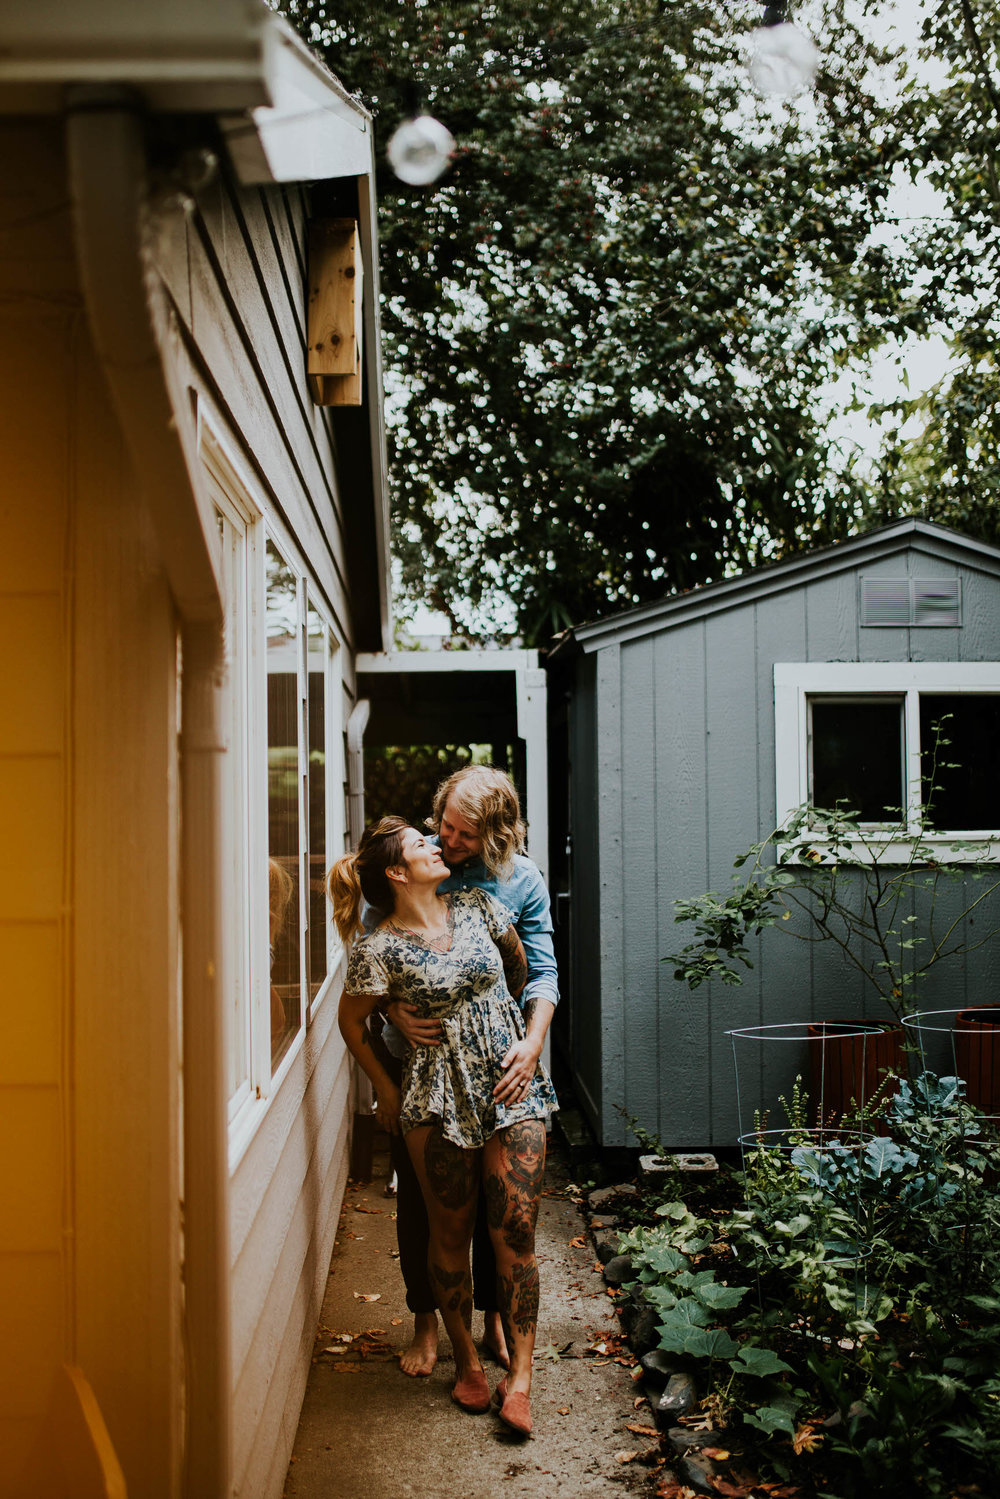 in home couples session engagement portland oregon living room backyard kitchen bedroom will christina